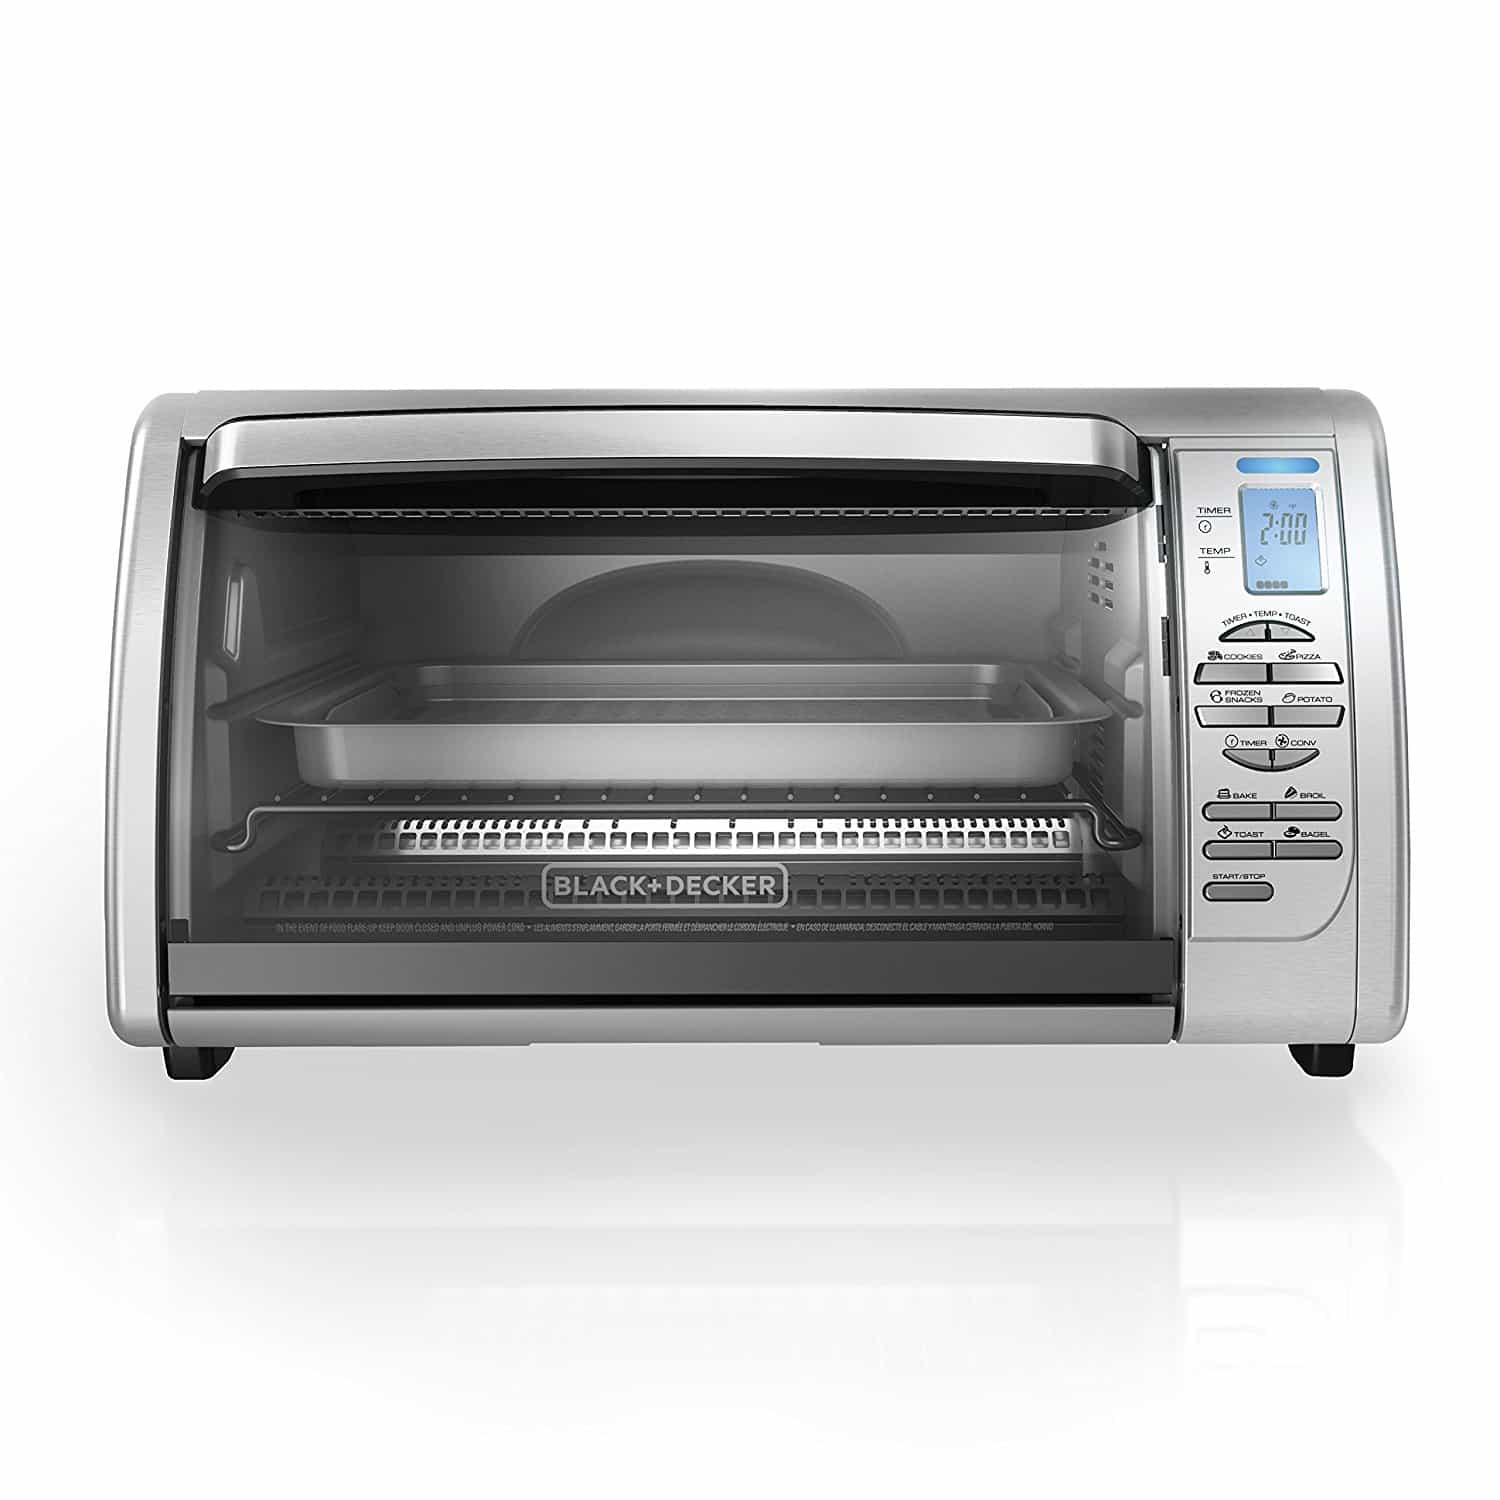 BLACK & DECKER 6 SLICE TOASTER OVEN